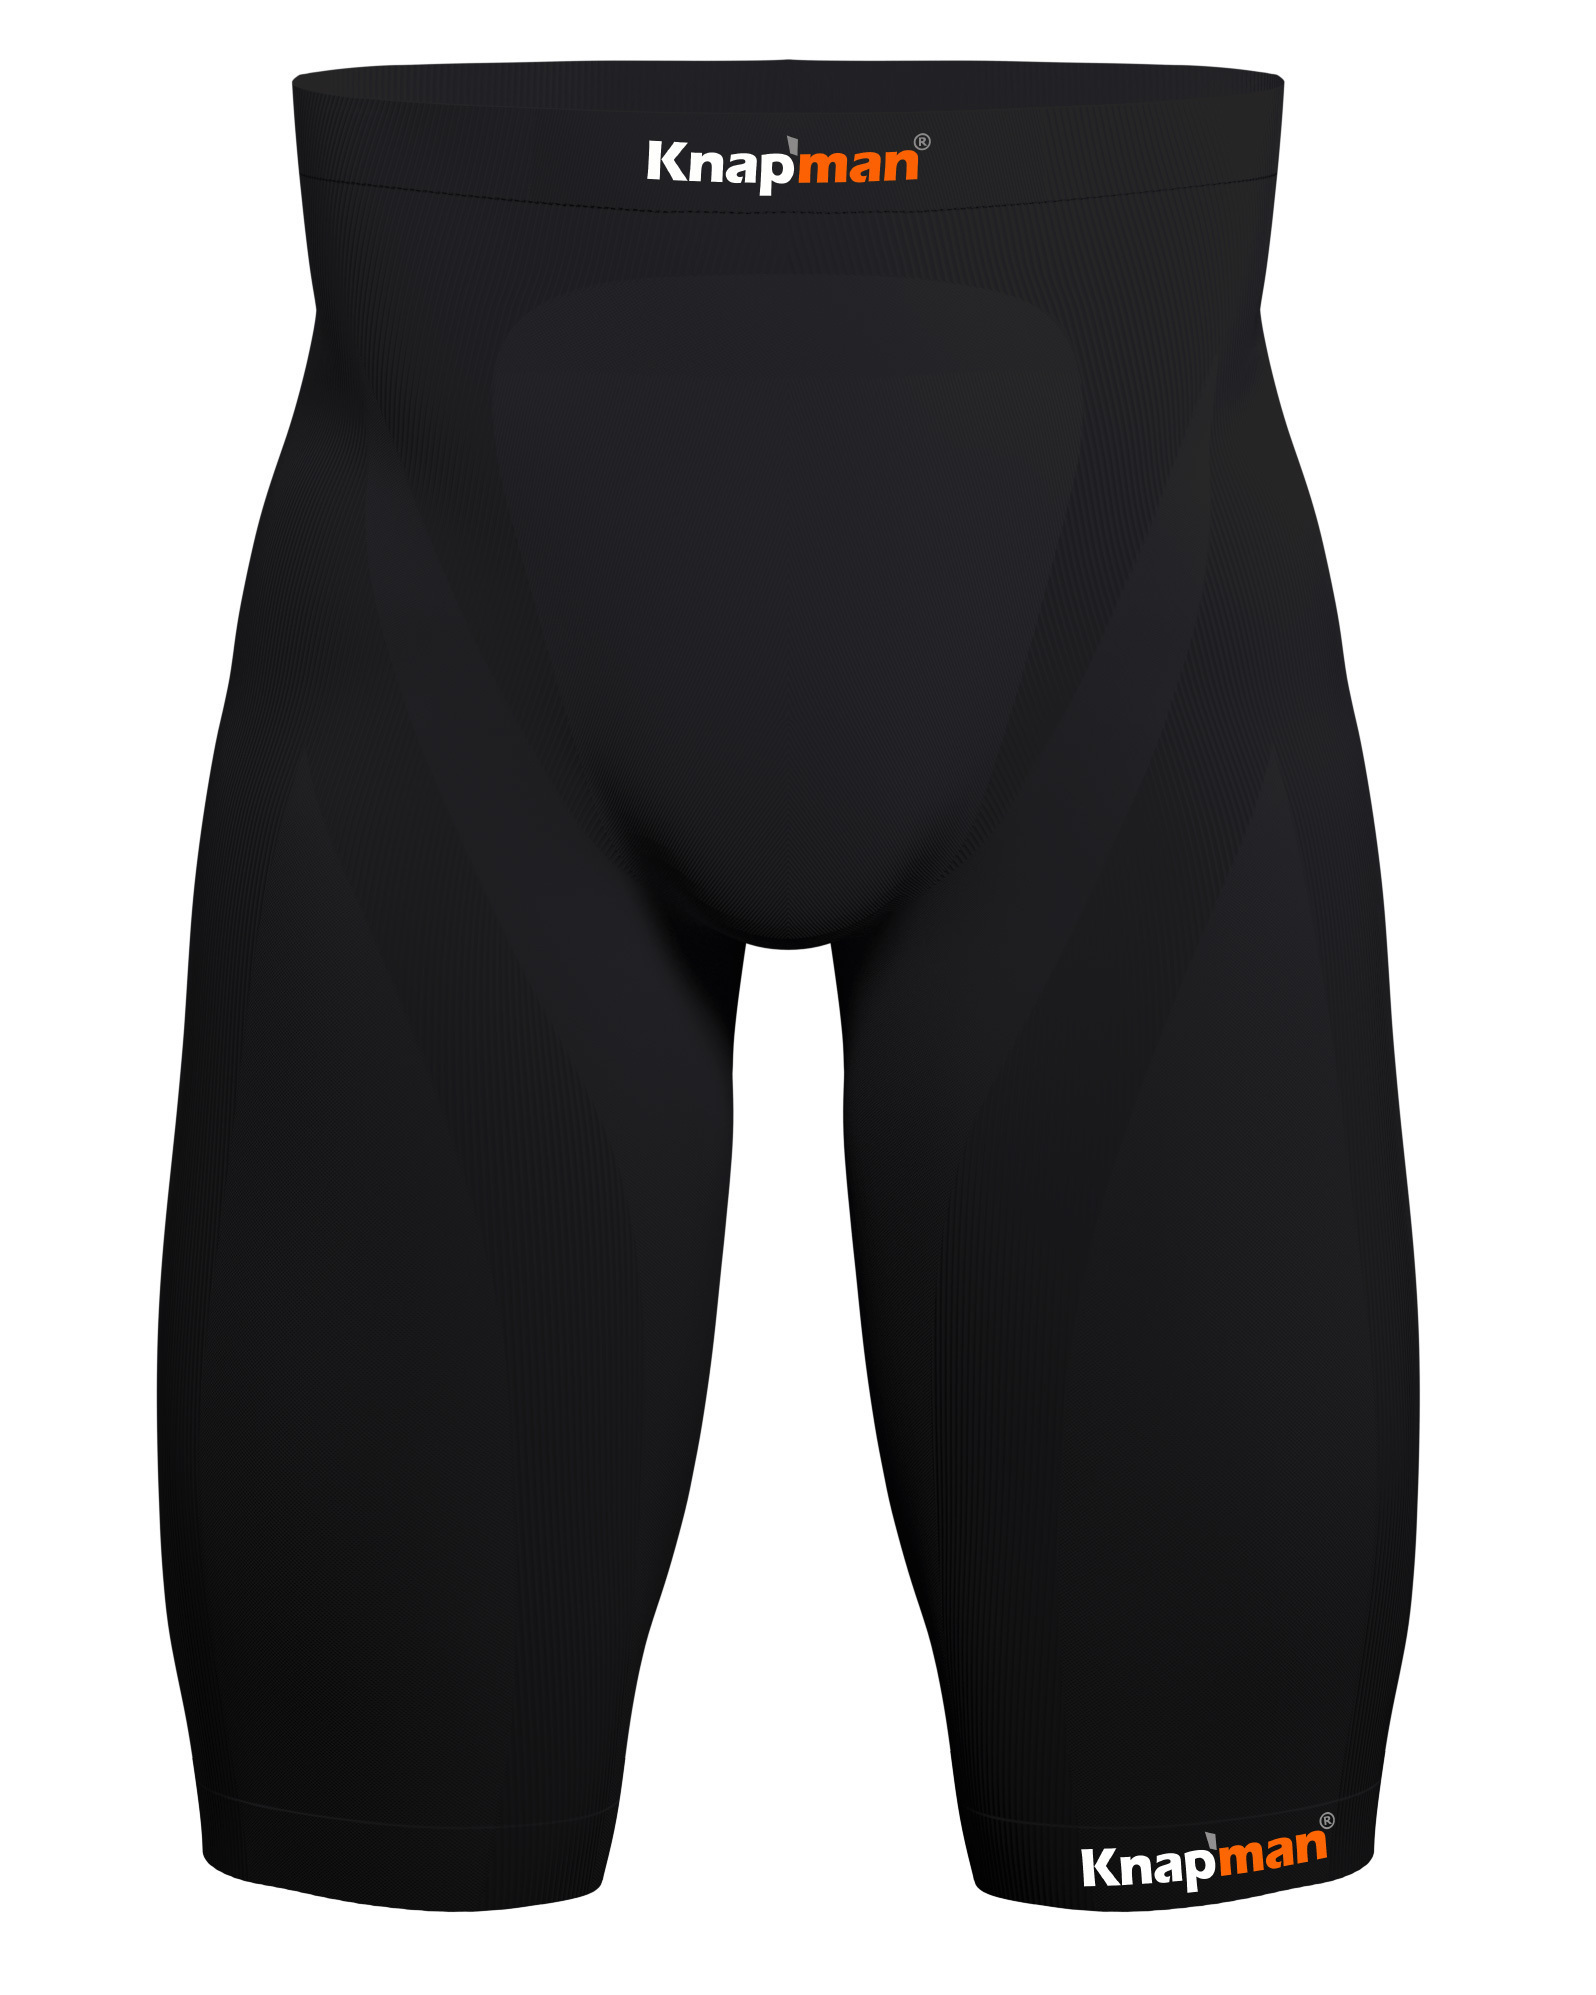 Knap'man Zoned Compression Short USP 25% black